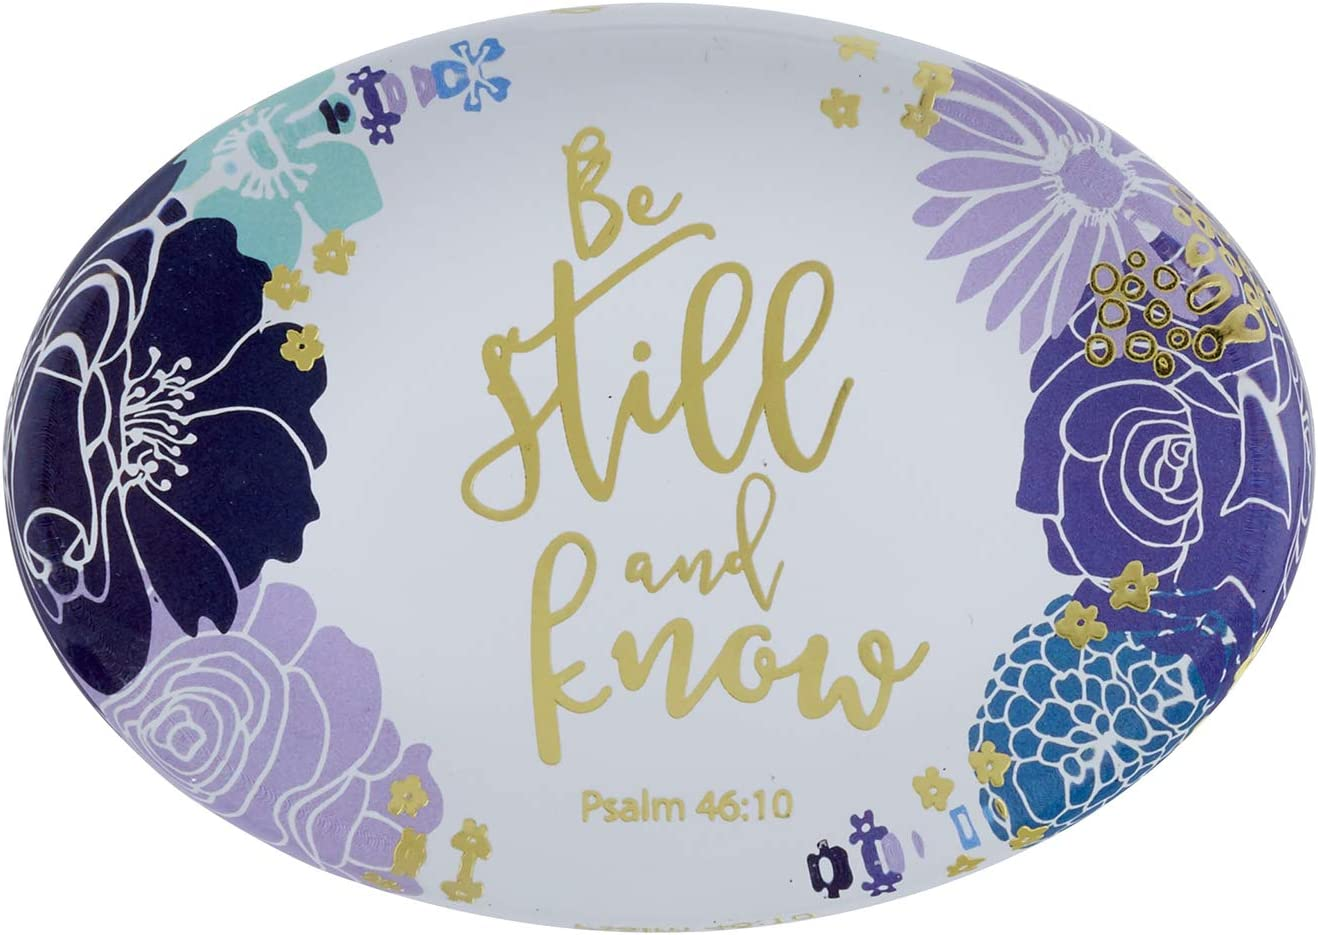 Creative Brands Bouquet Collection Oval Glass Paperweight Lavender Floral with Scripture, 3.5 x 3.5-Inches, Be Still-Psalm 46:10